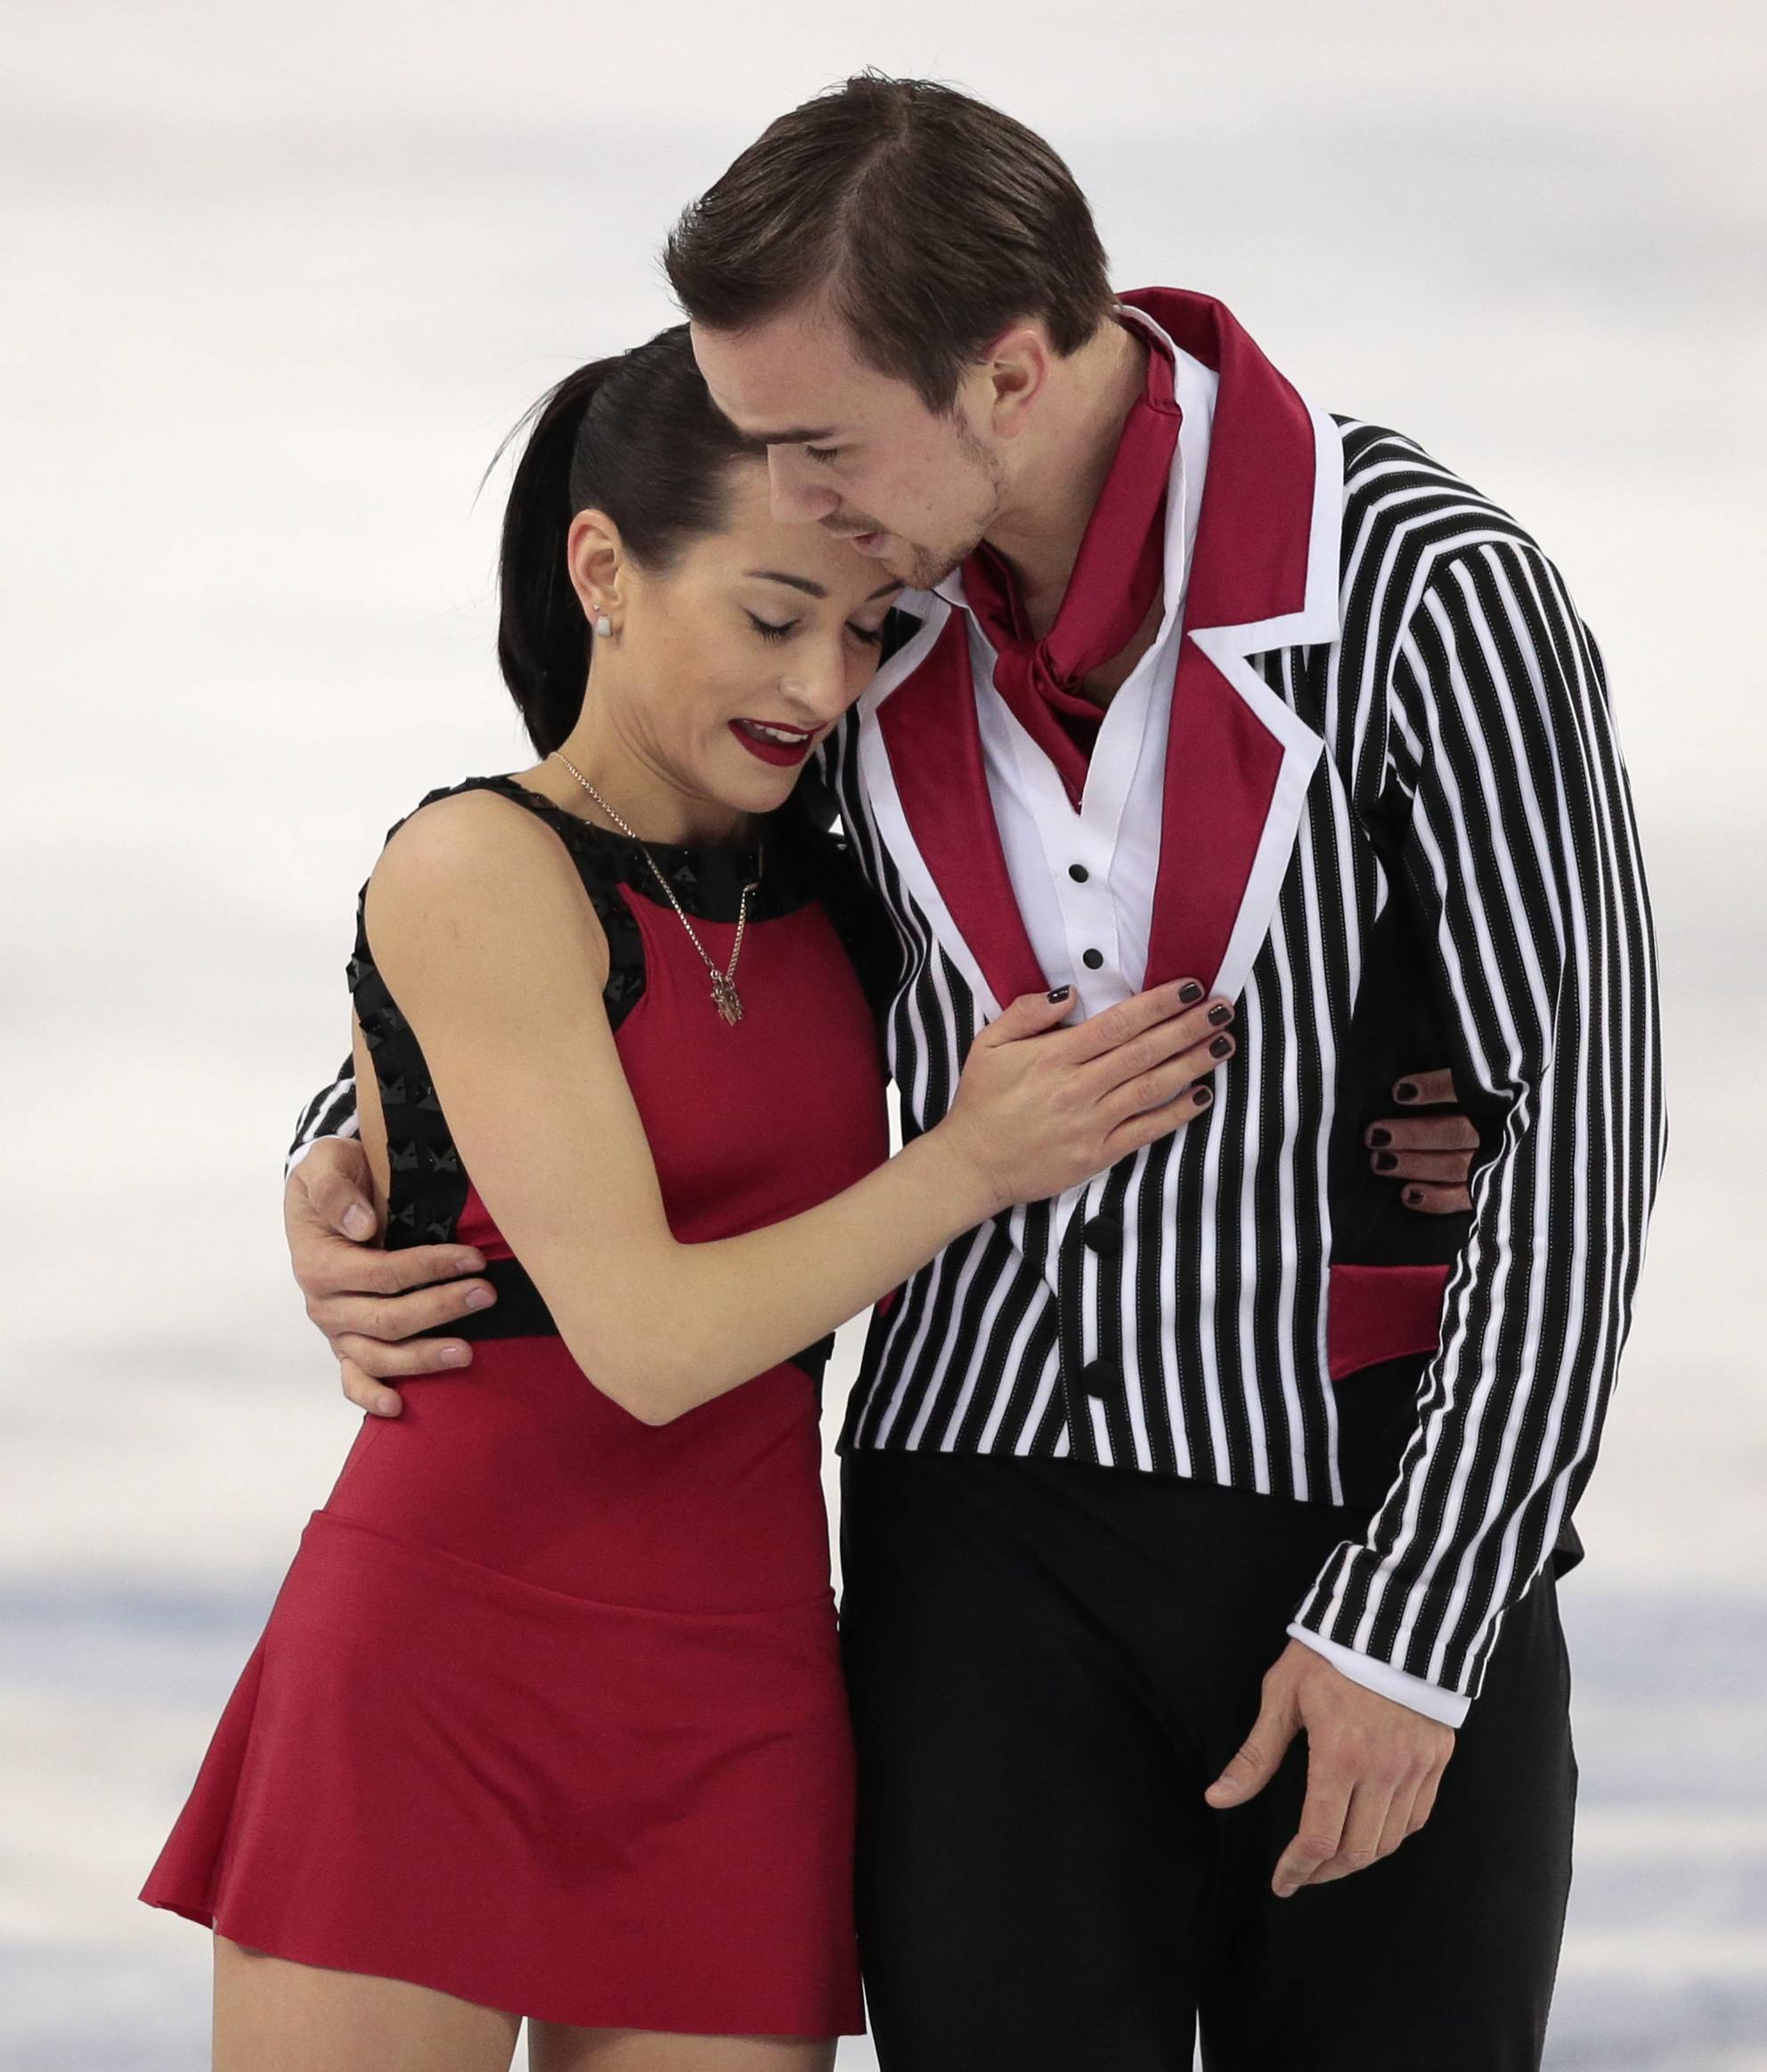 Ksenia Stolbova and Fedor Klimov of Russia embrace after competing in the pairs free skate figure skating.